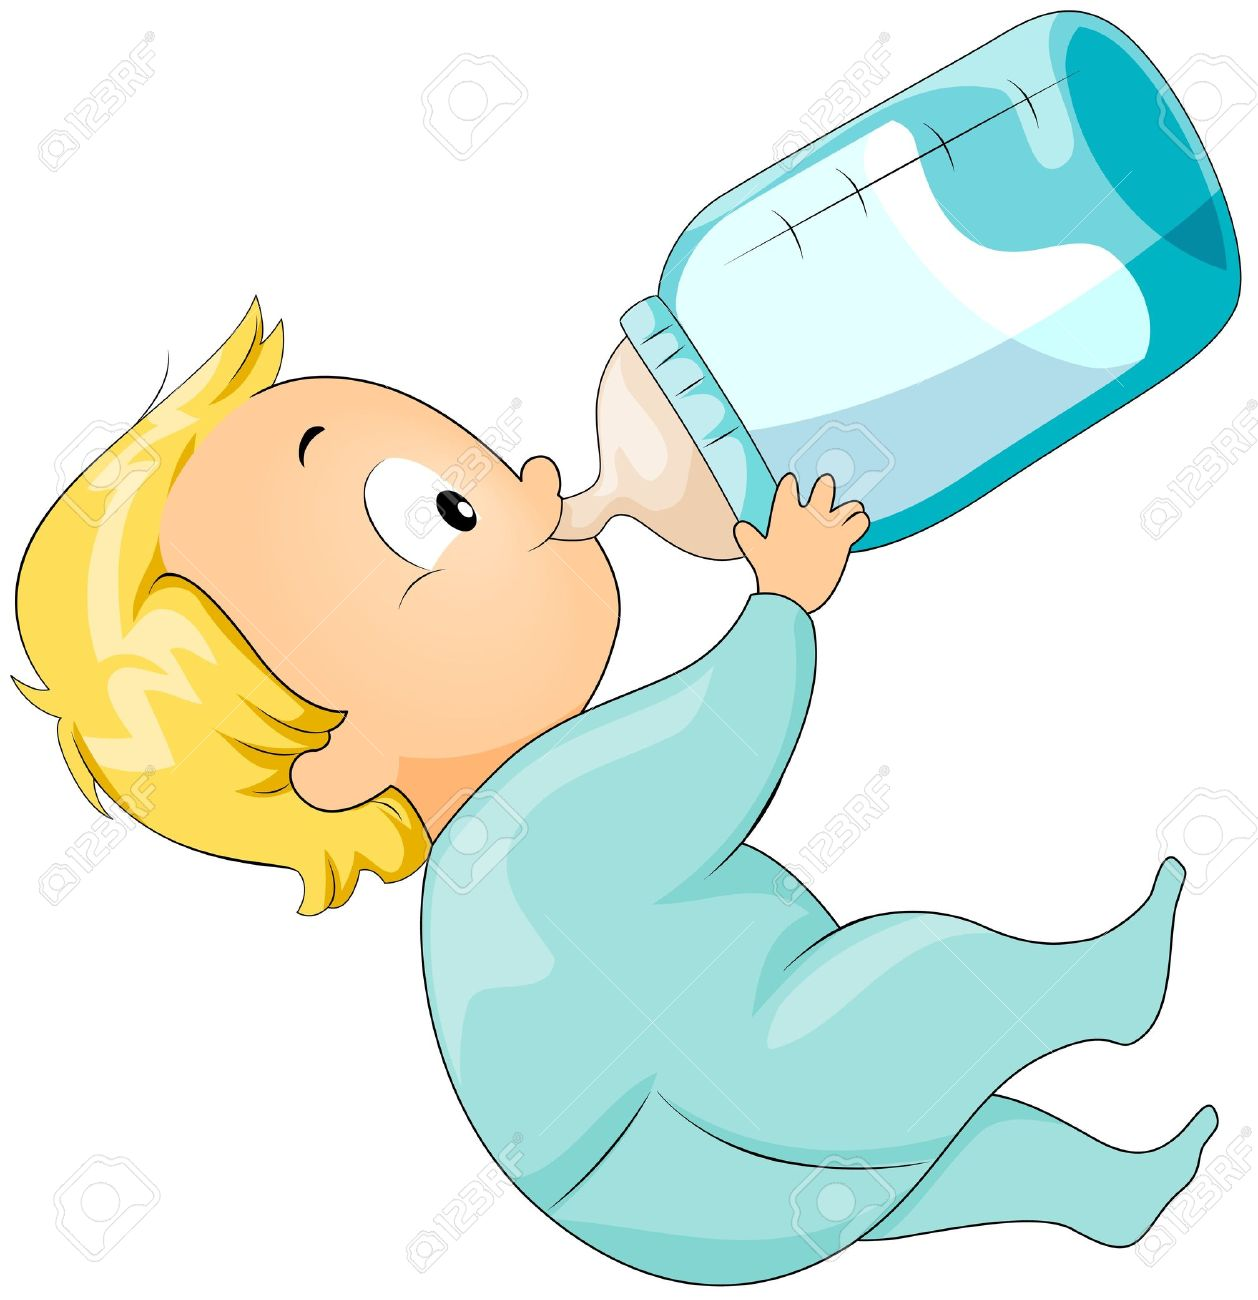 Baby Drinking Milk From Bottle Clipart.